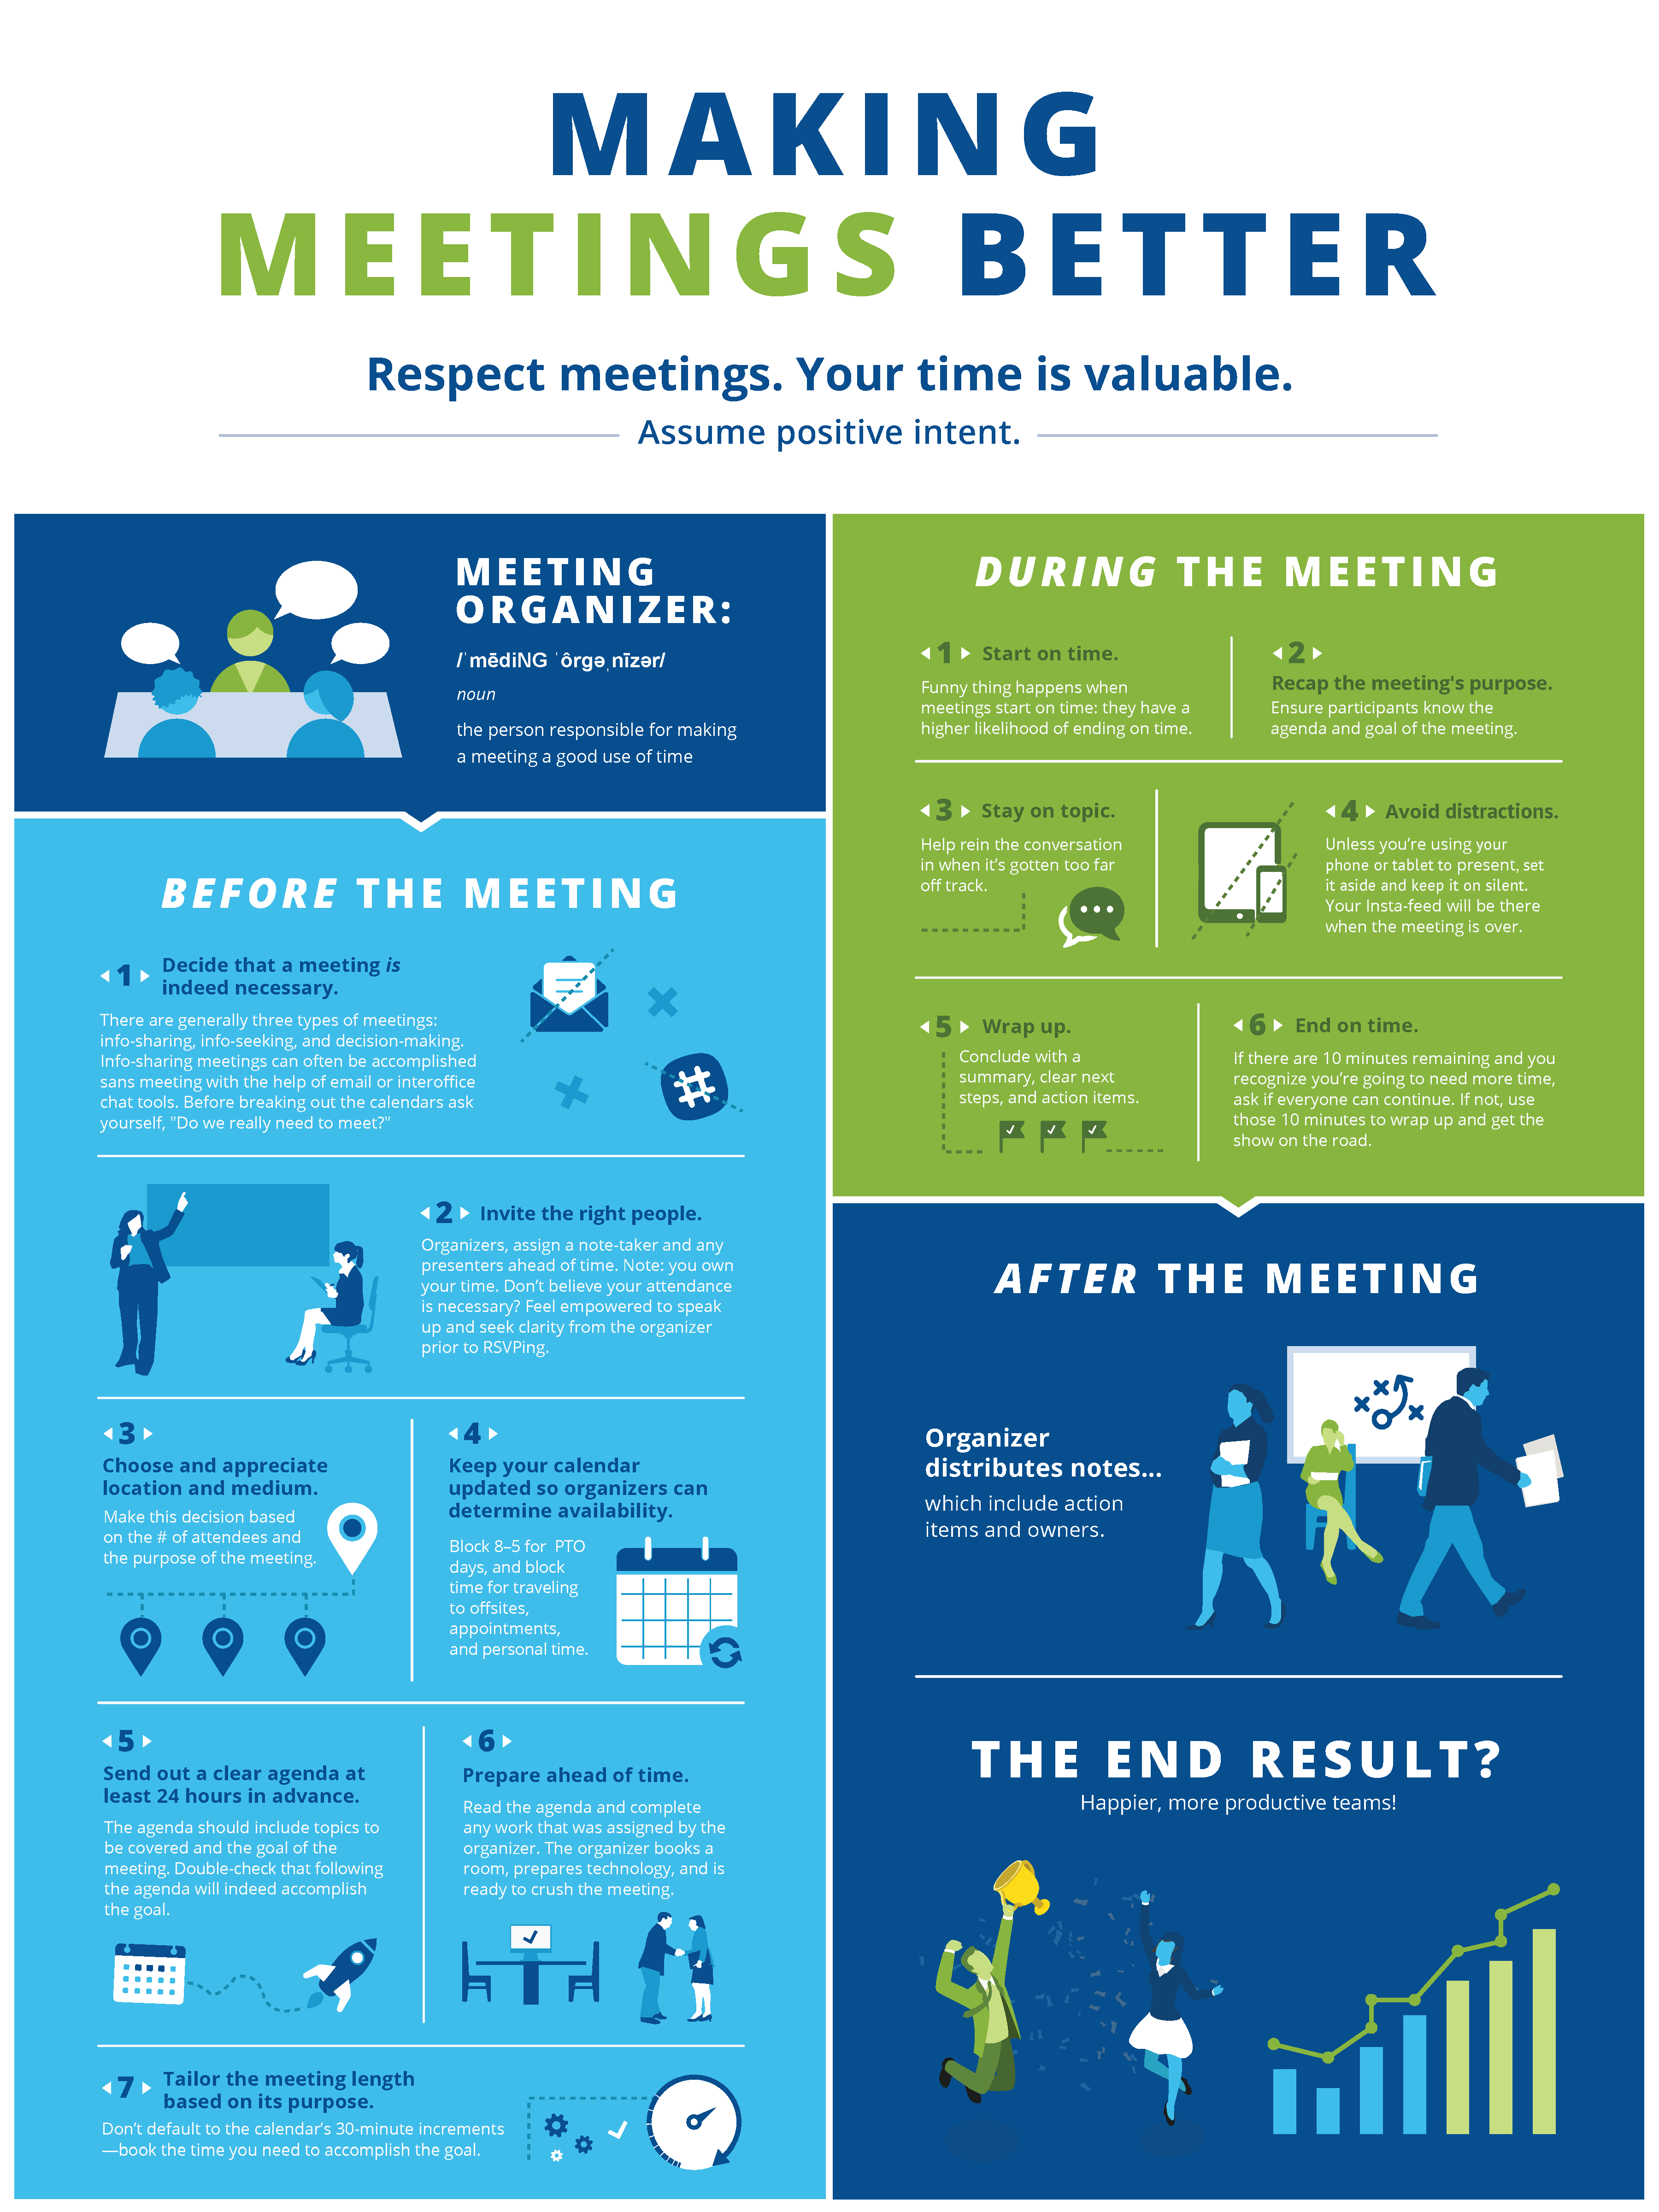 meeting_infographic_18x24